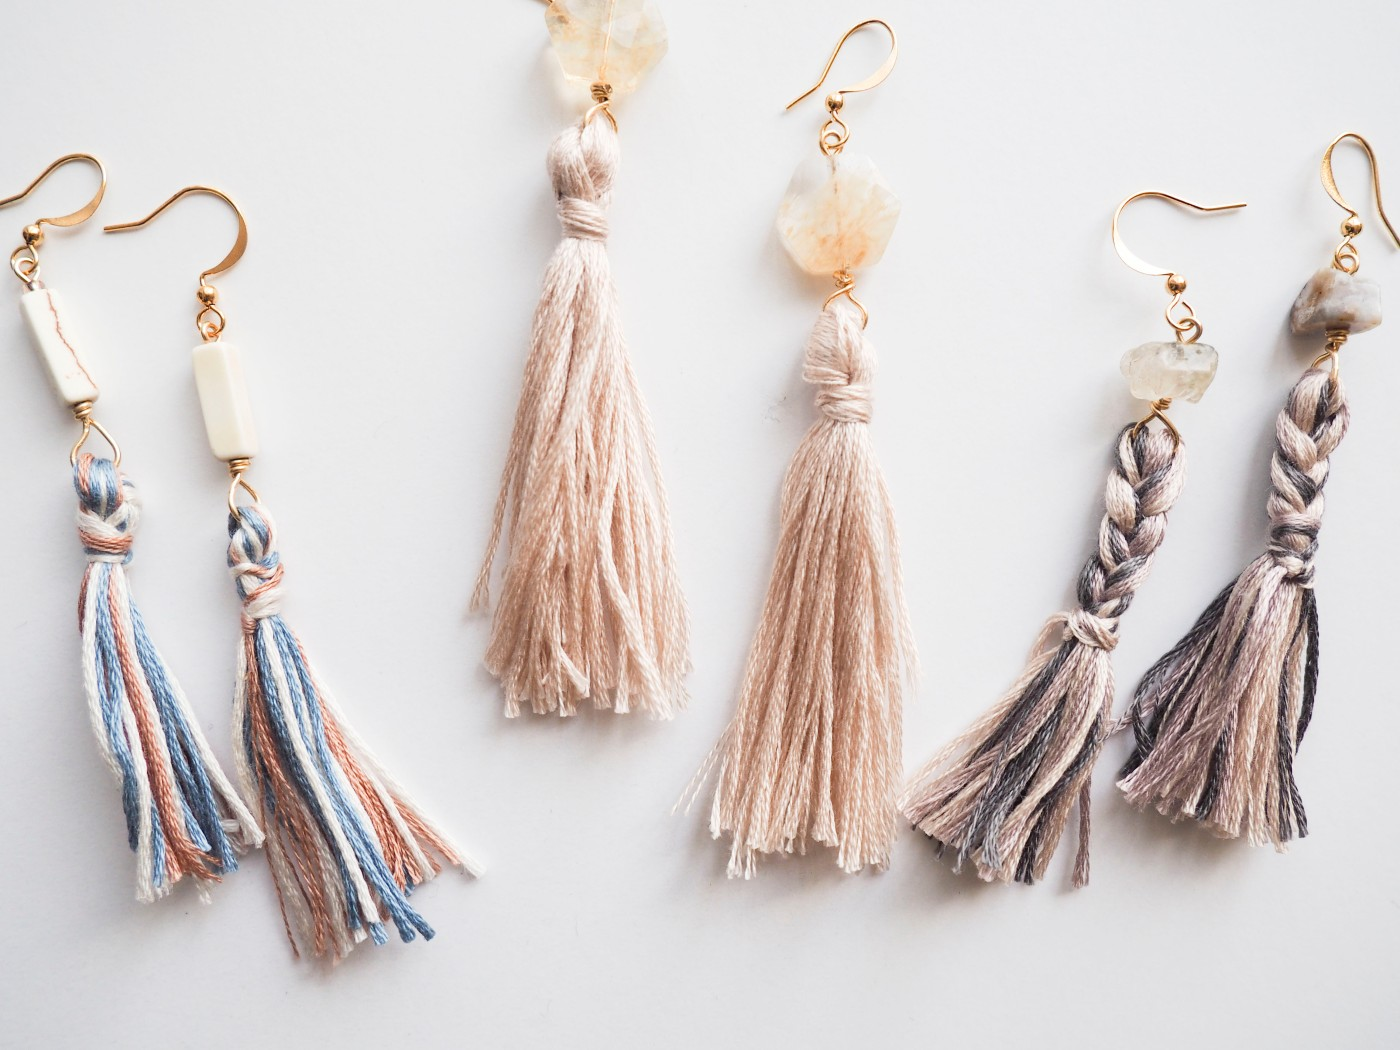 SV_tassel earrings_group-7.jpg